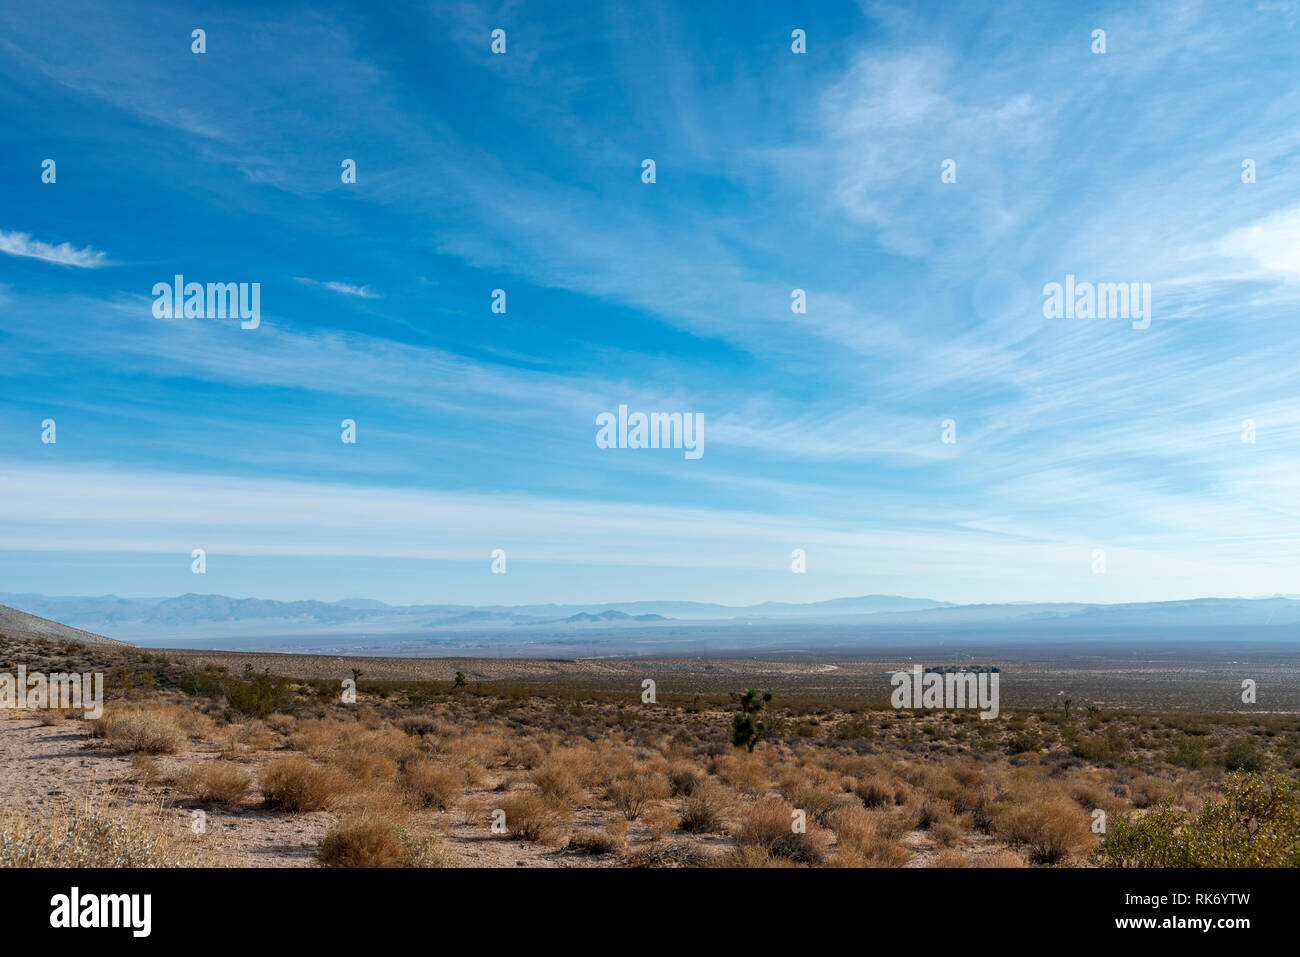 Looking down from top of desert valley with dead bushes and brush under blue sky with white clouds. Hazy mountains in the distance. - Stock Image